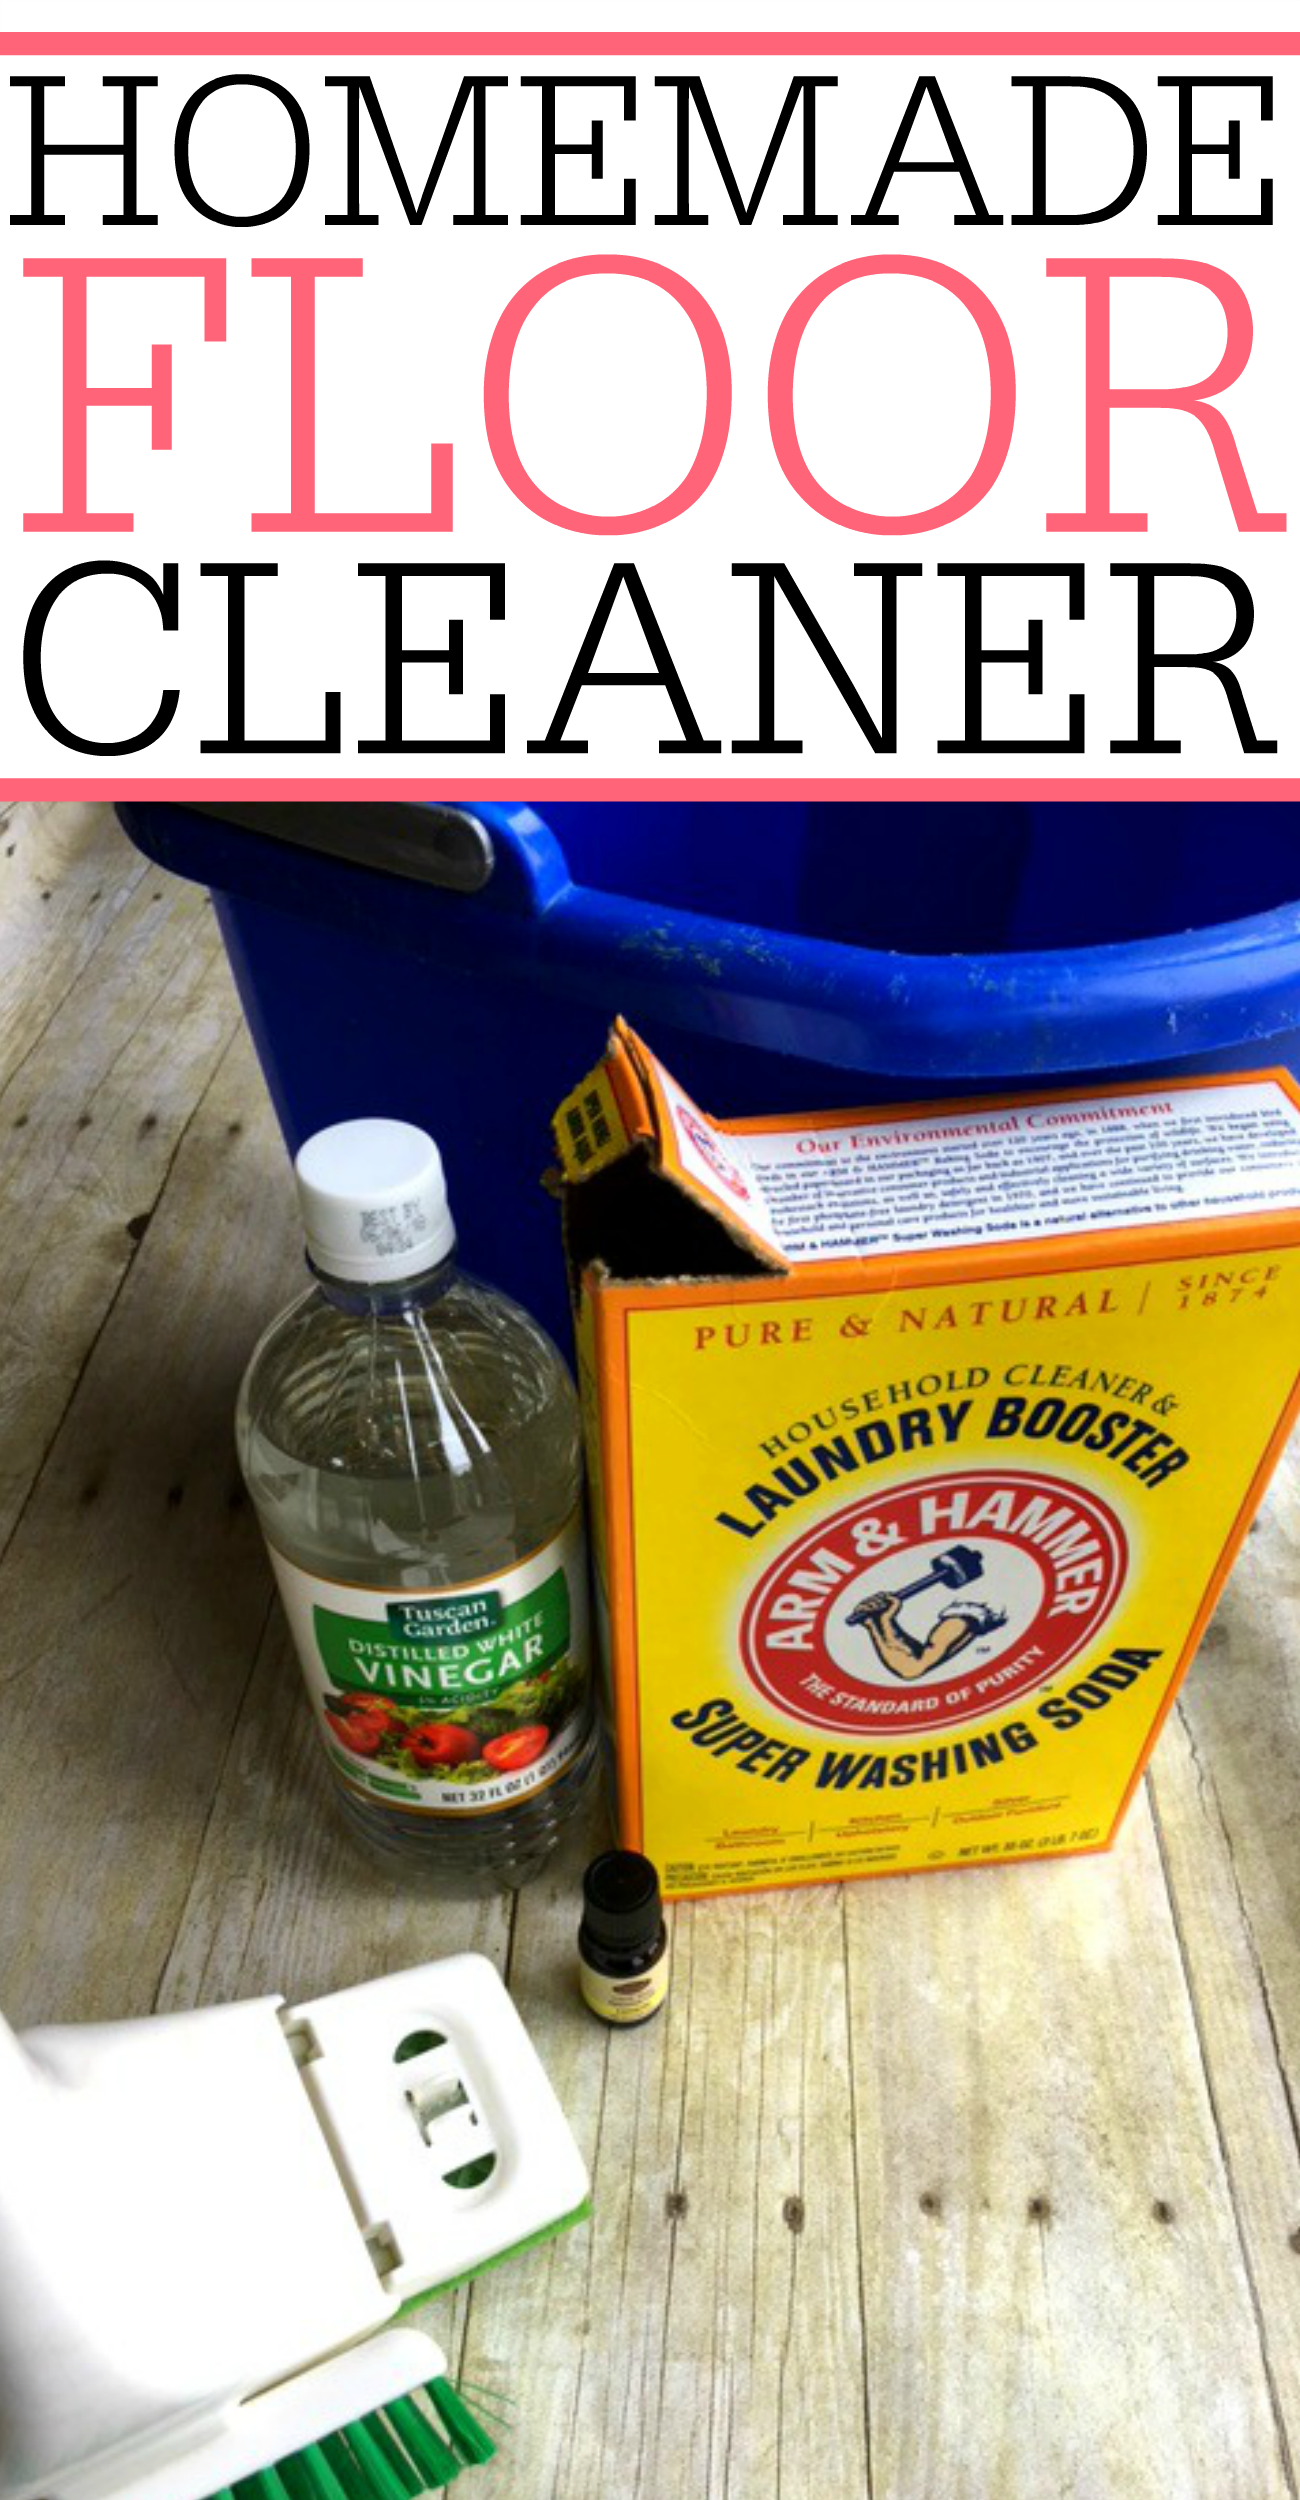 Get rid of dirt and grime easily with this homemade floor cleaner. It smells great and cleans better than the store brands. Spend less time cleaning with this easy mop solution.